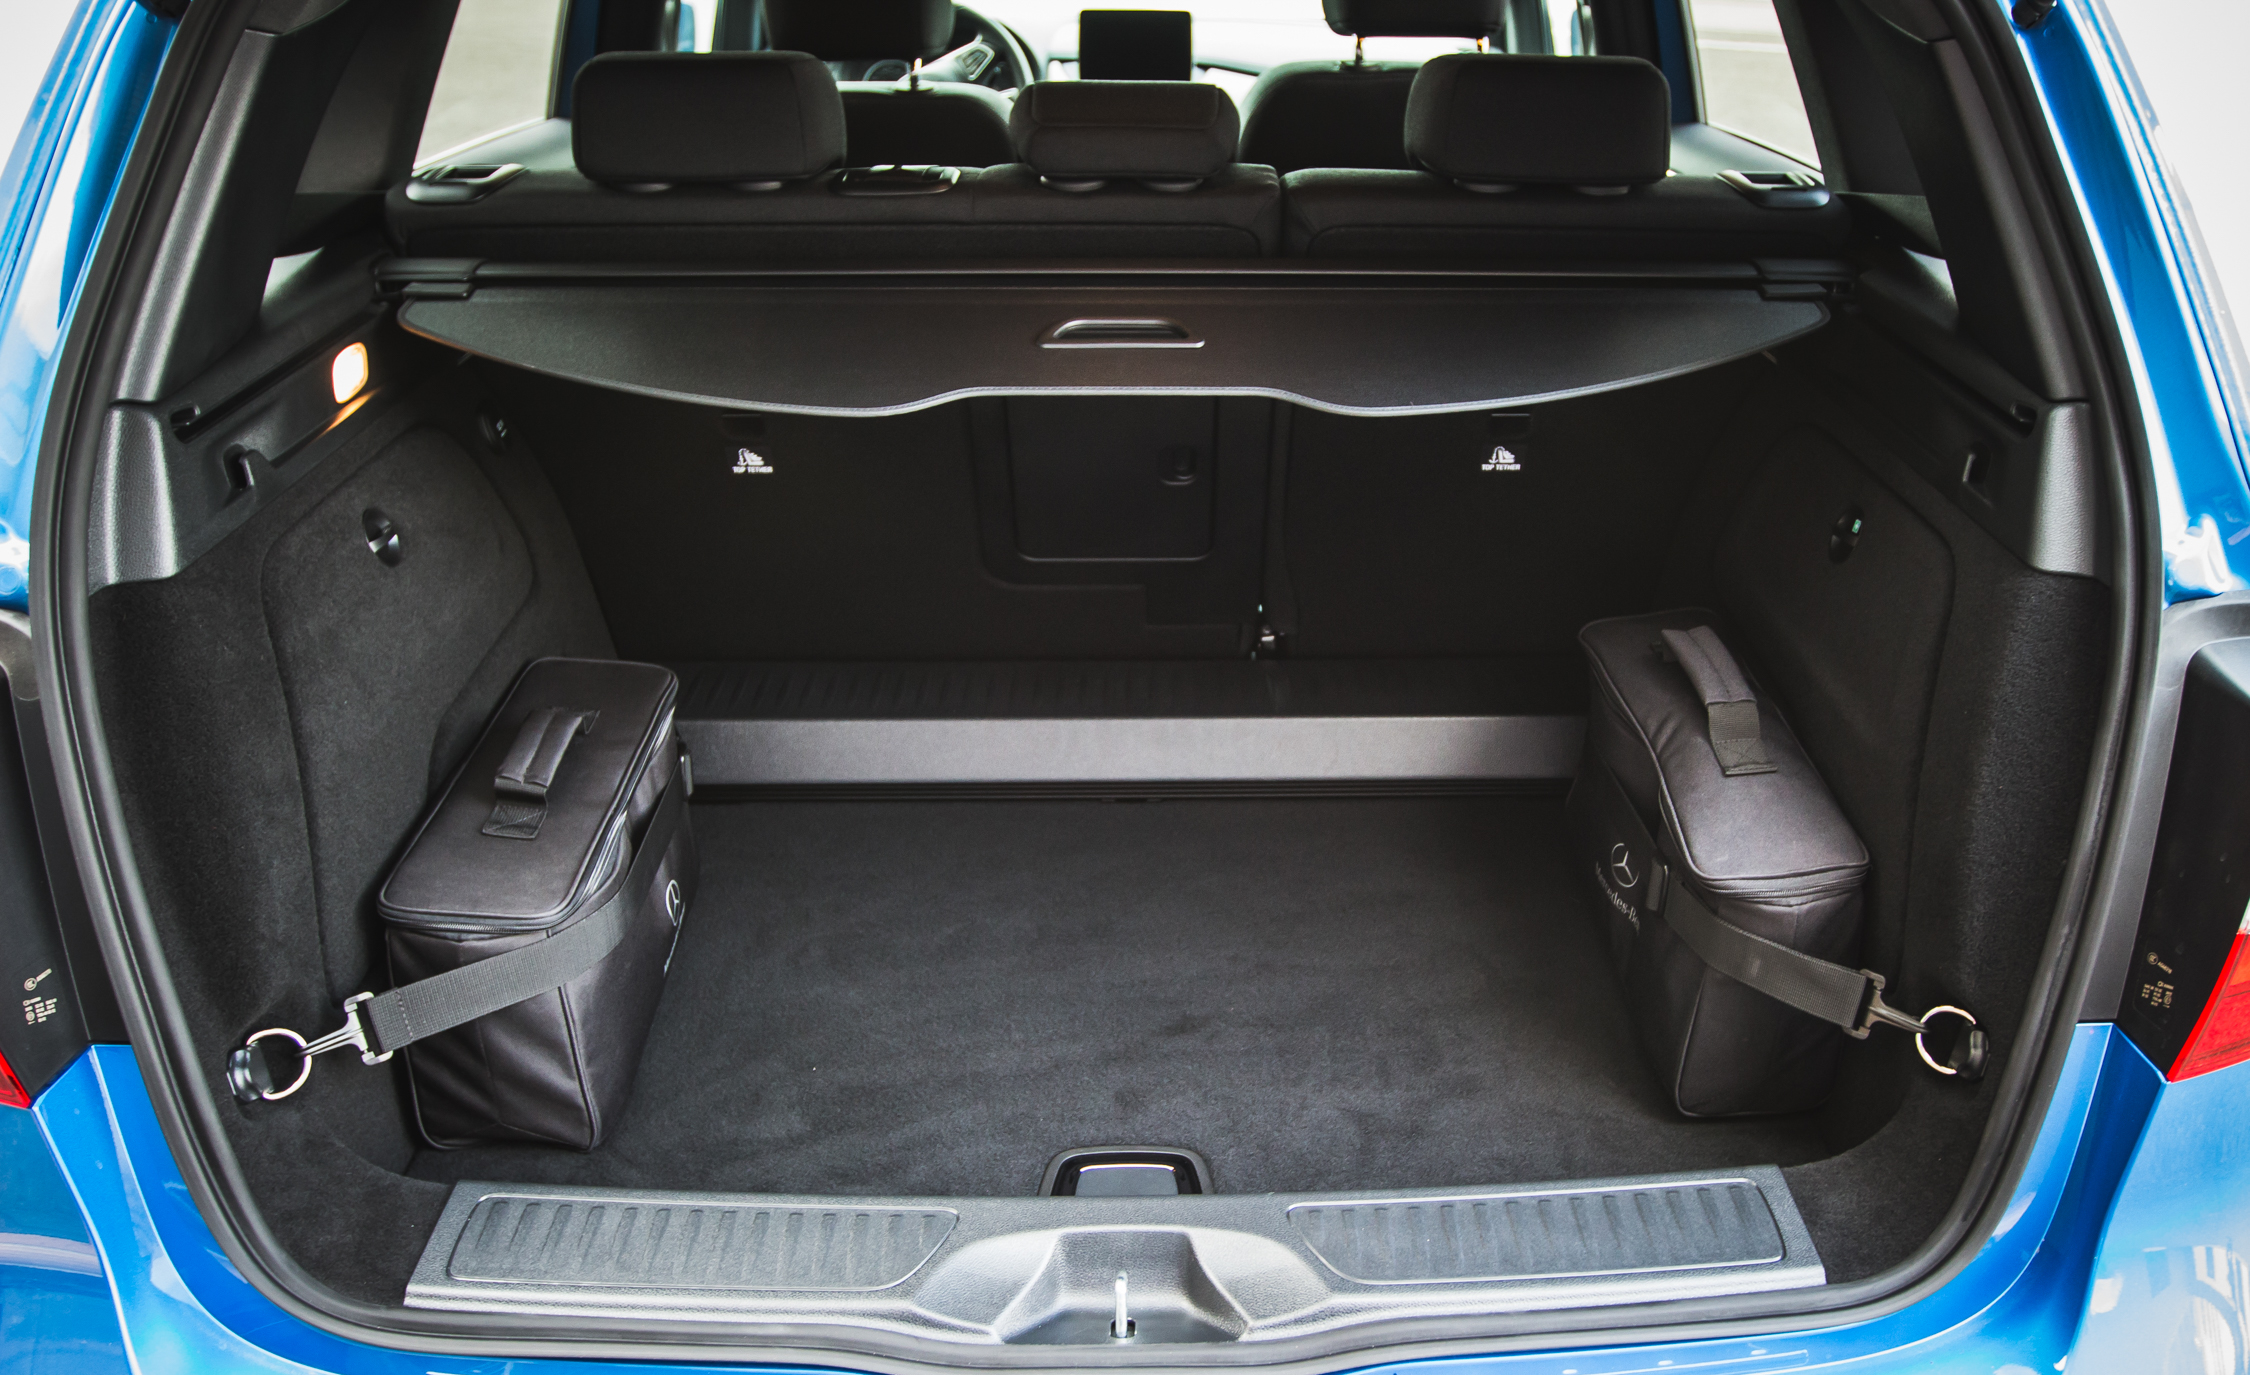 2017 Mercedes Benz B250e Interior View Cargo Space (View 7 of 24)